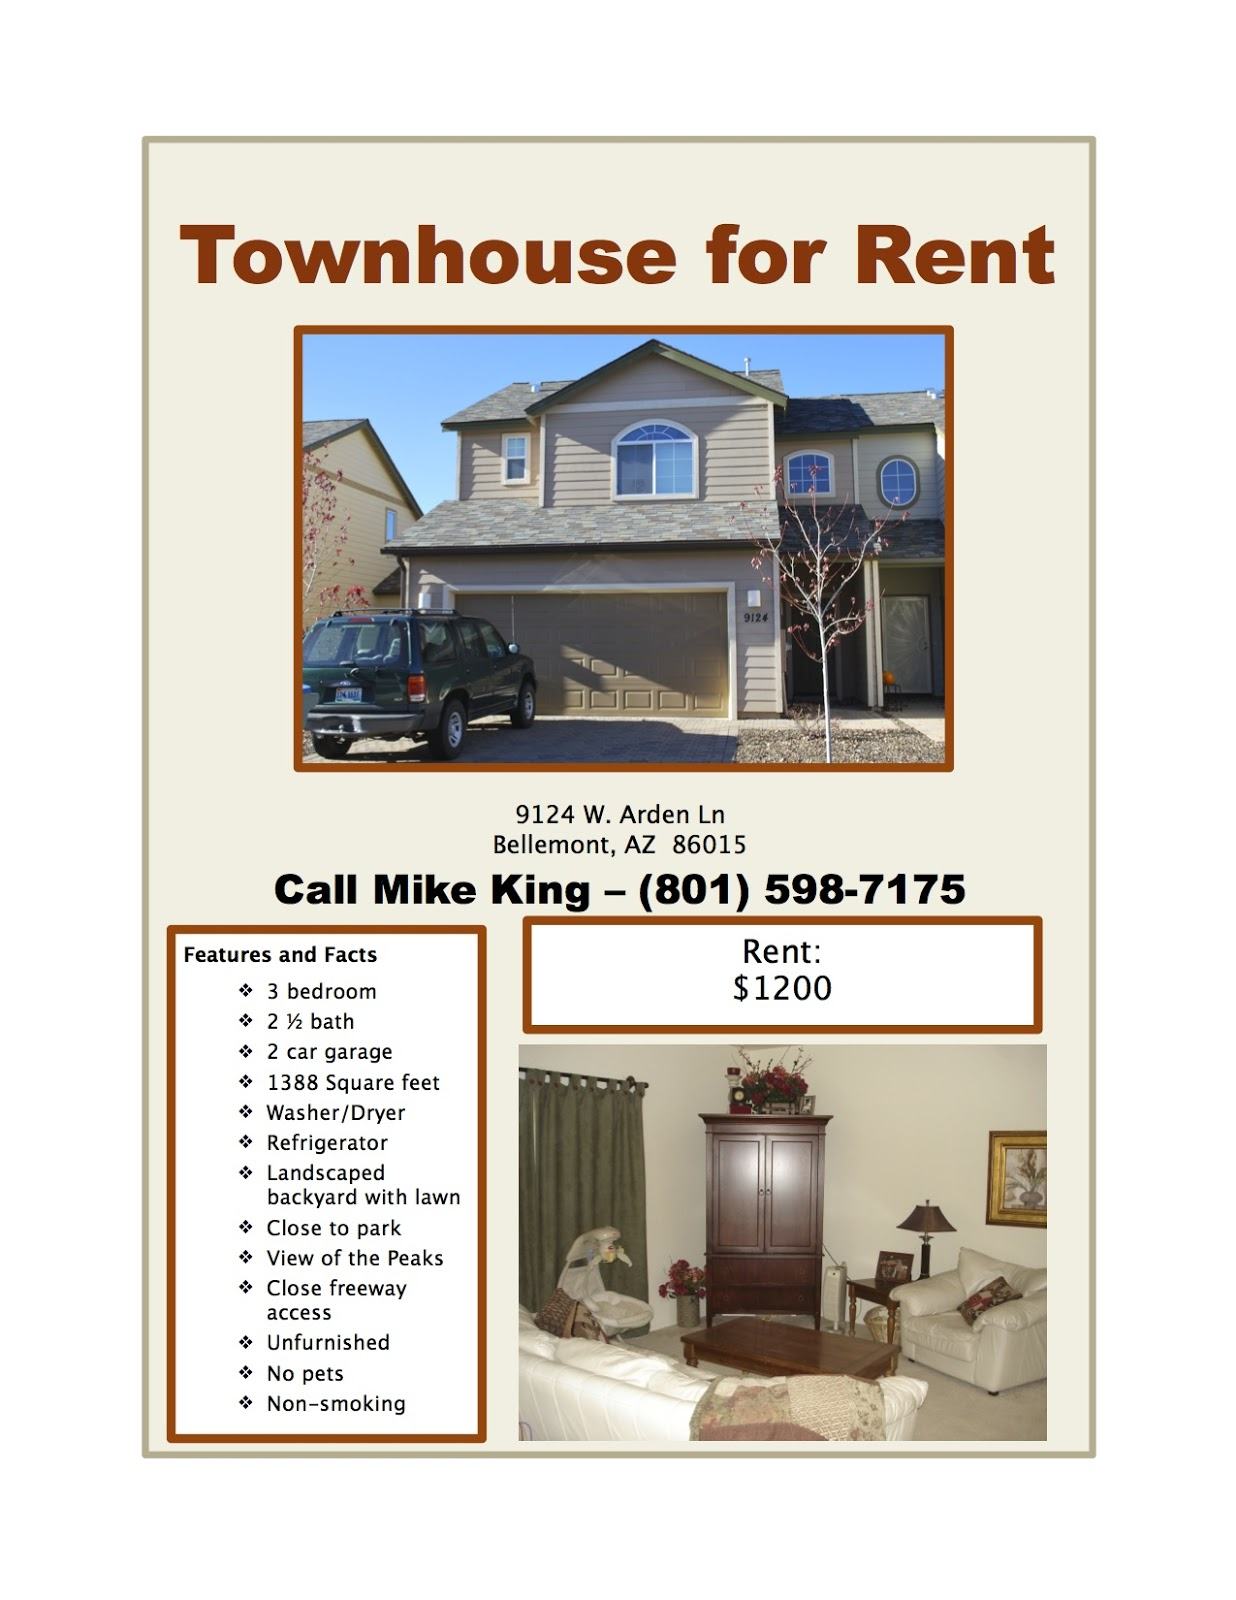 rent flyer template house for rent flyer template rent flyer timiz